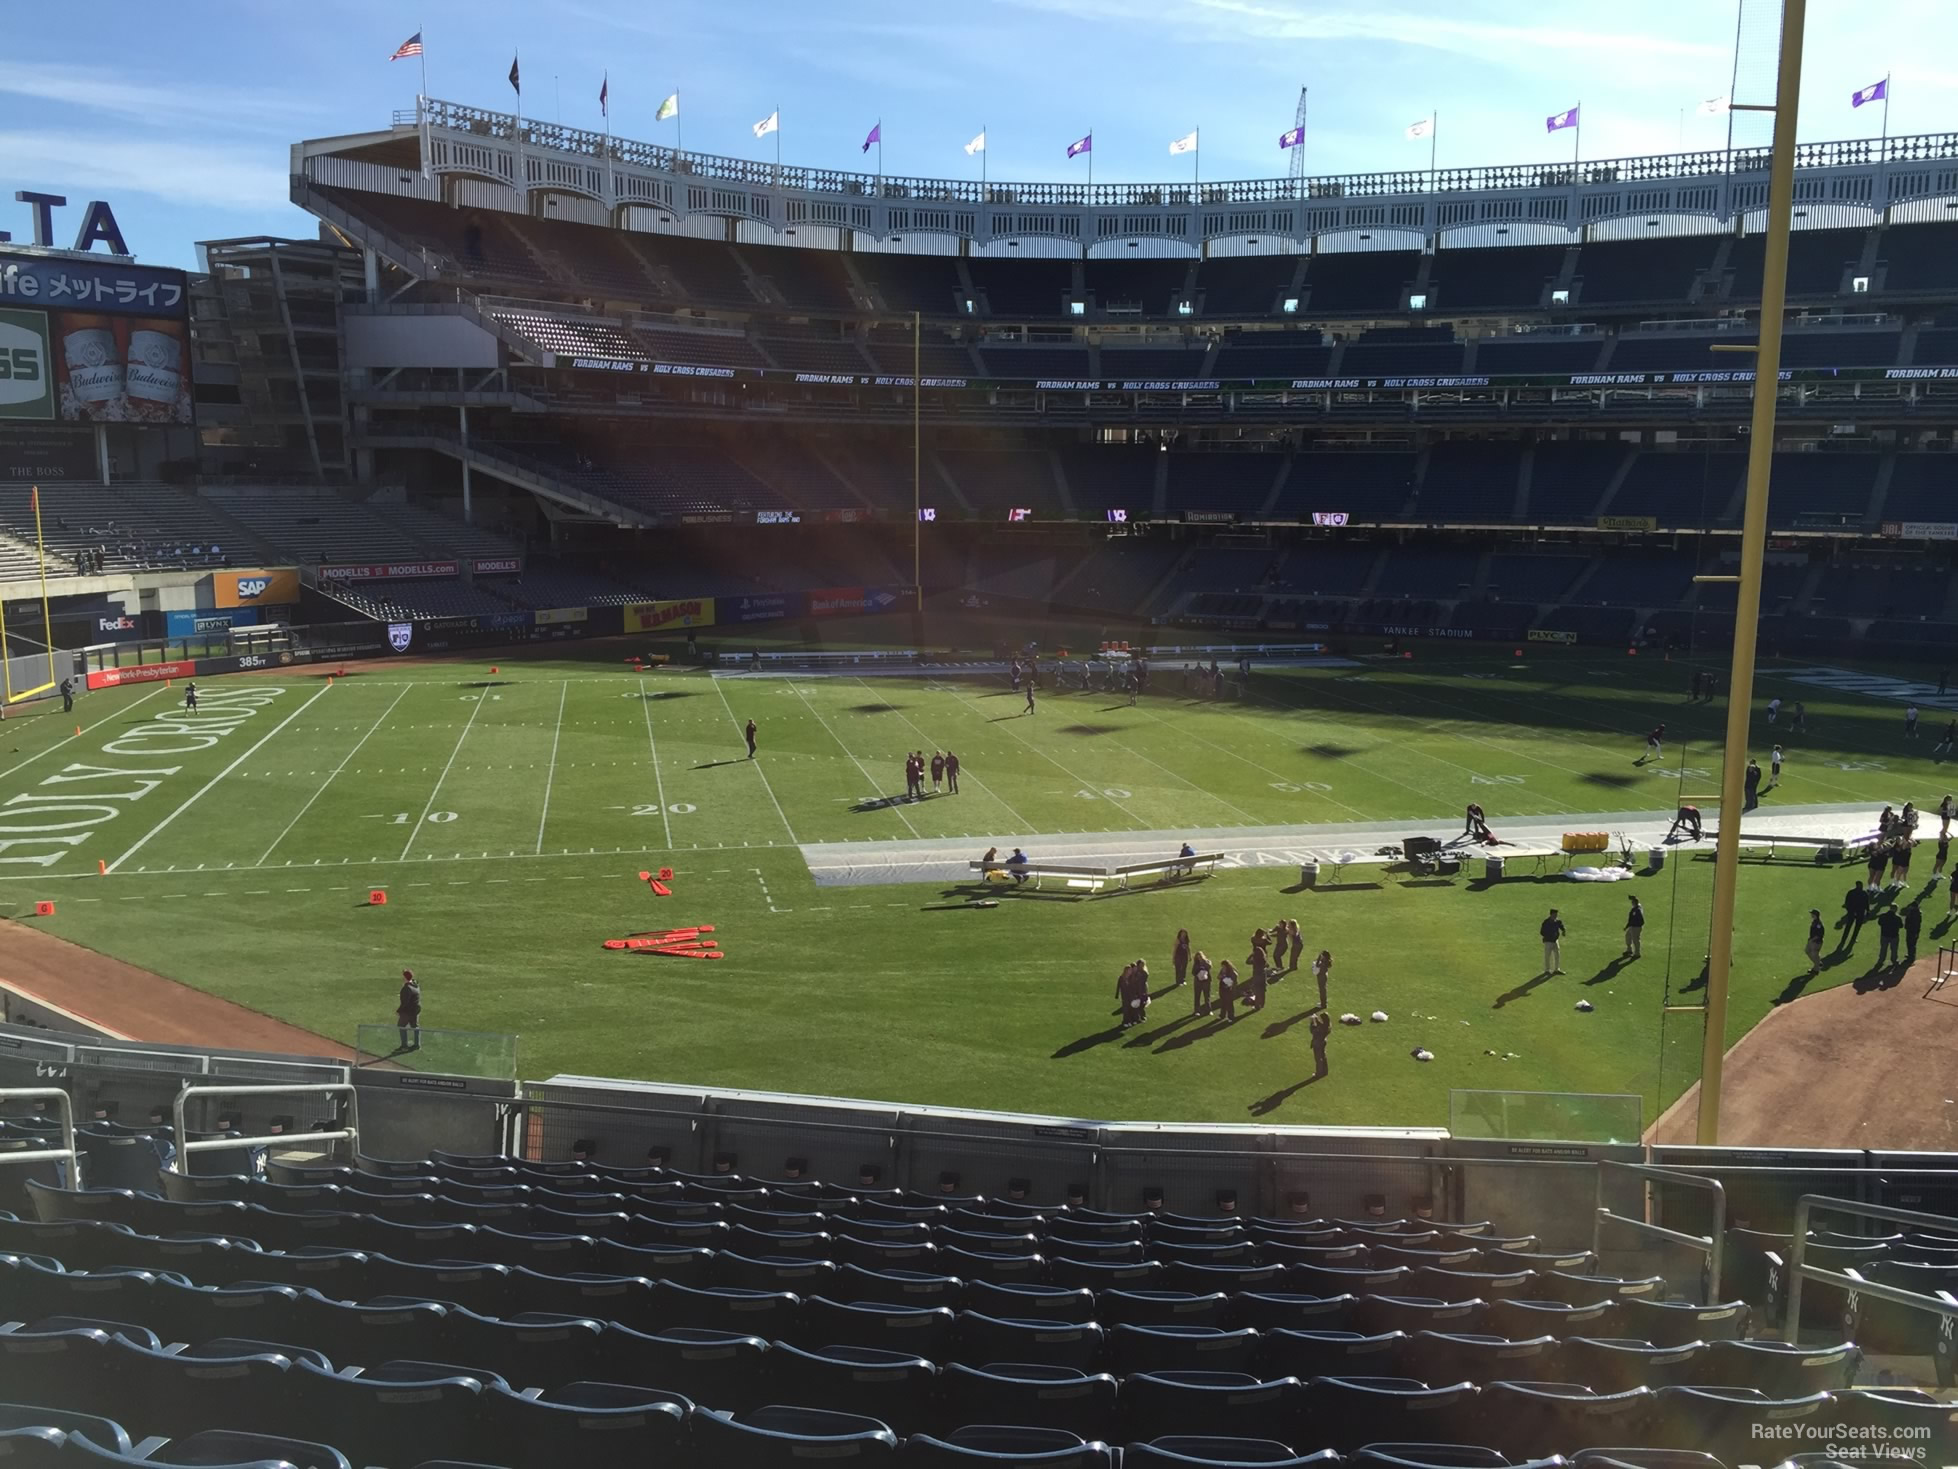 Section 233A seat view